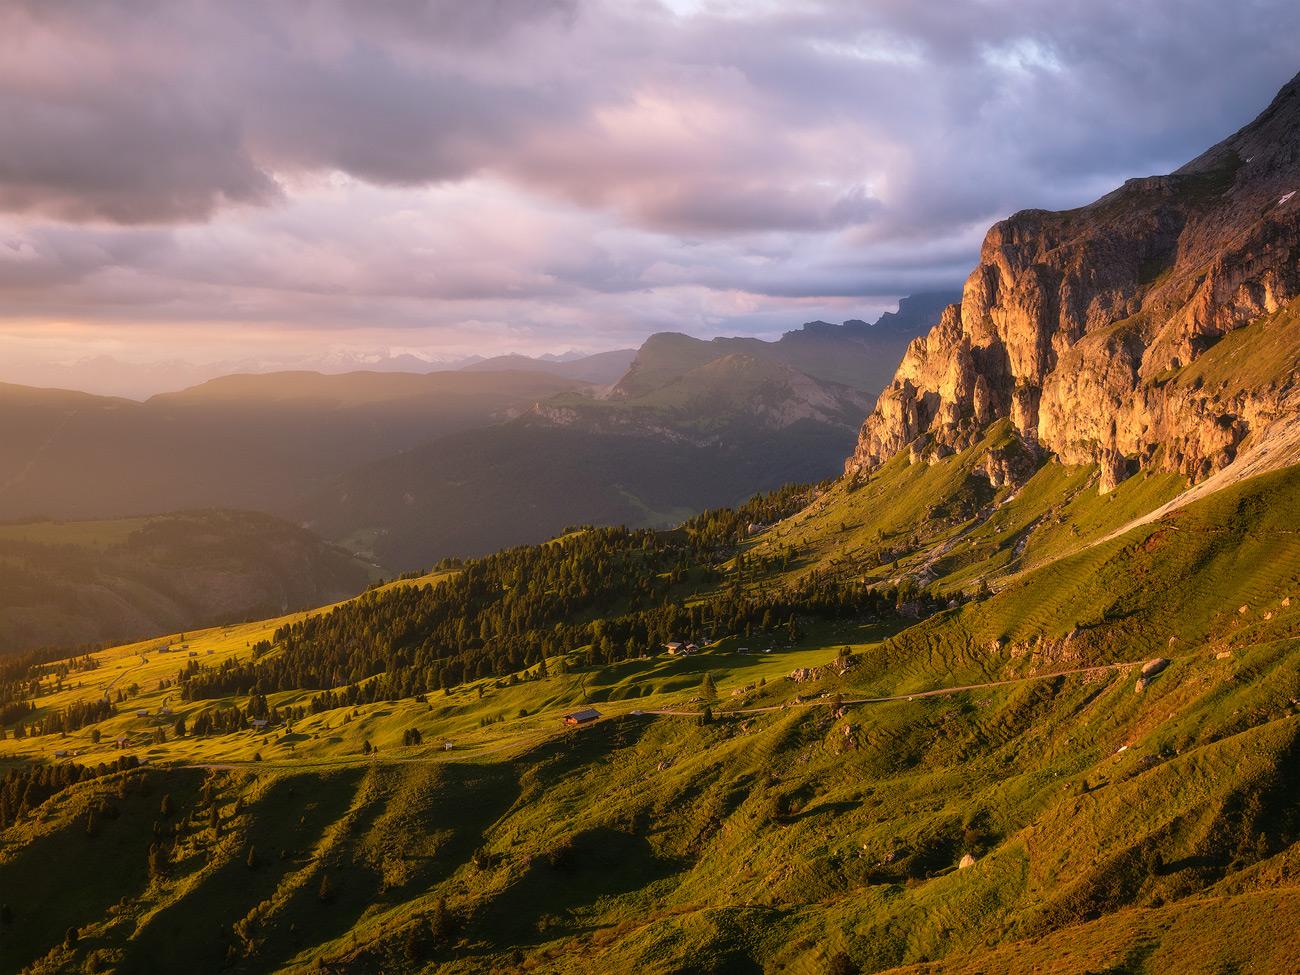 Light Galore, Plattkofel, Dolomites, South Tyrol, Italy by Nils Leonhardt